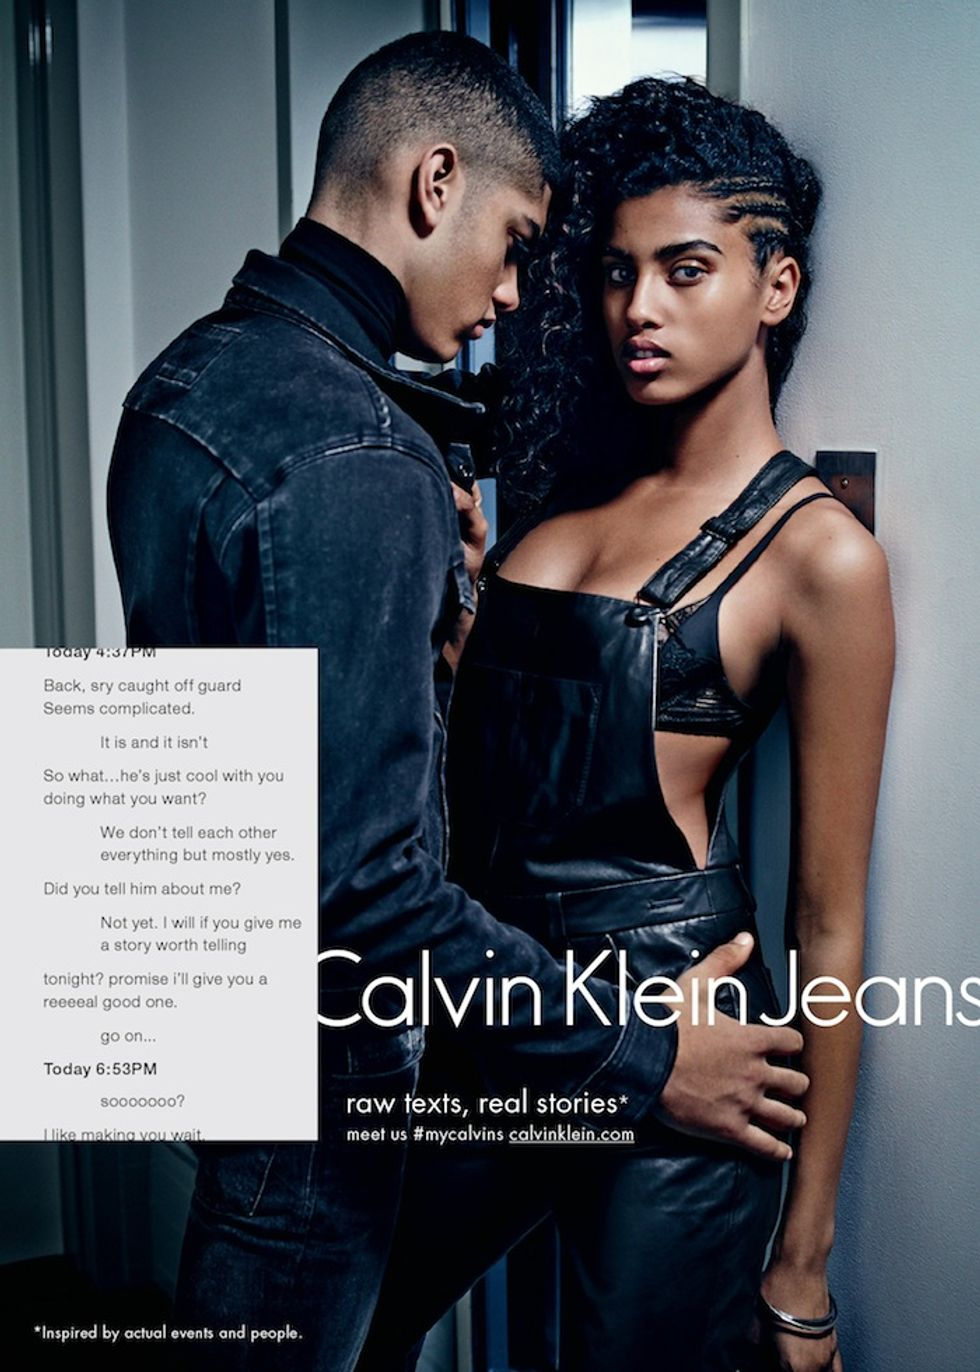 Calvin Klein's New Sexting Ads Were Made Just for Generation Tinder